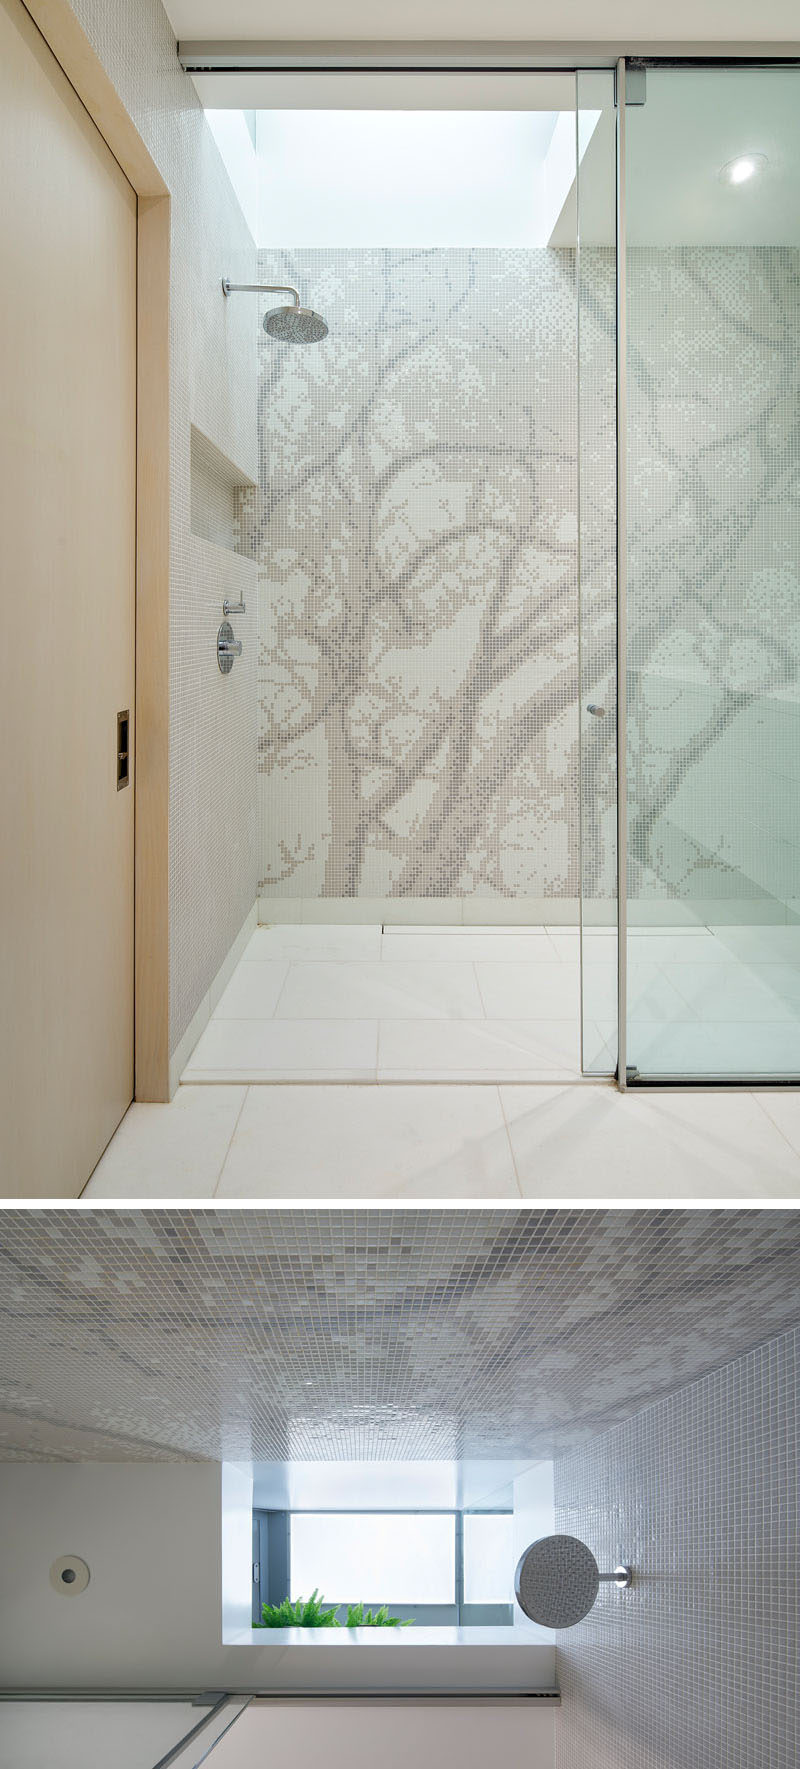 When you are in this shower, the steam from the shower collects on glass walls of a garden positioned directly above and waters the plants, which are partially visible from the shower below.